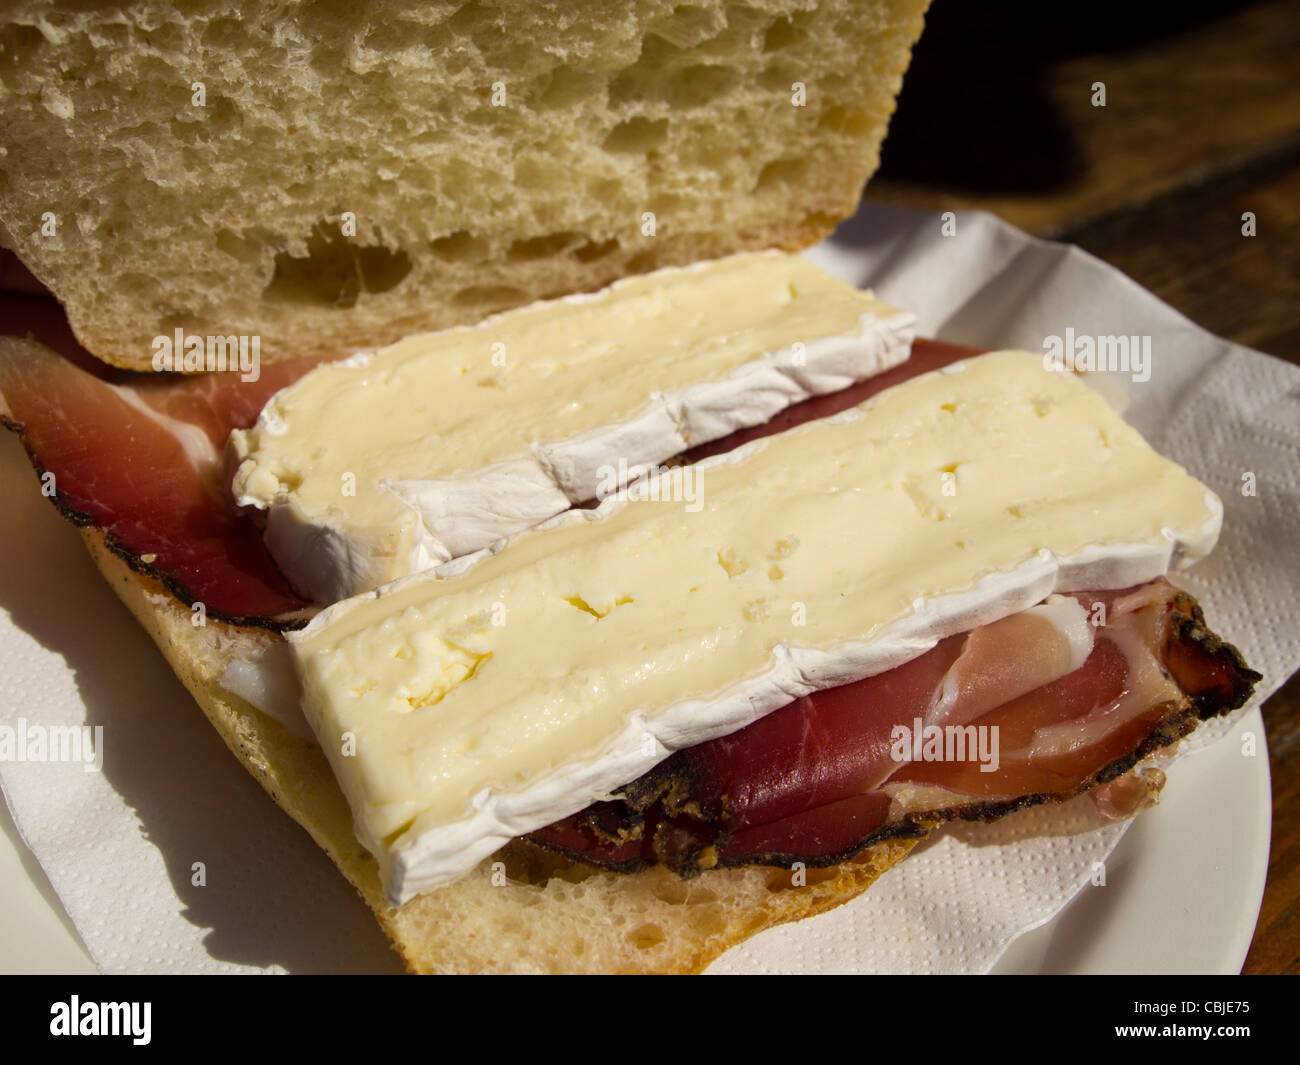 Spec and Brie Sandwich served at Courmayeur, Italy Stock Photo